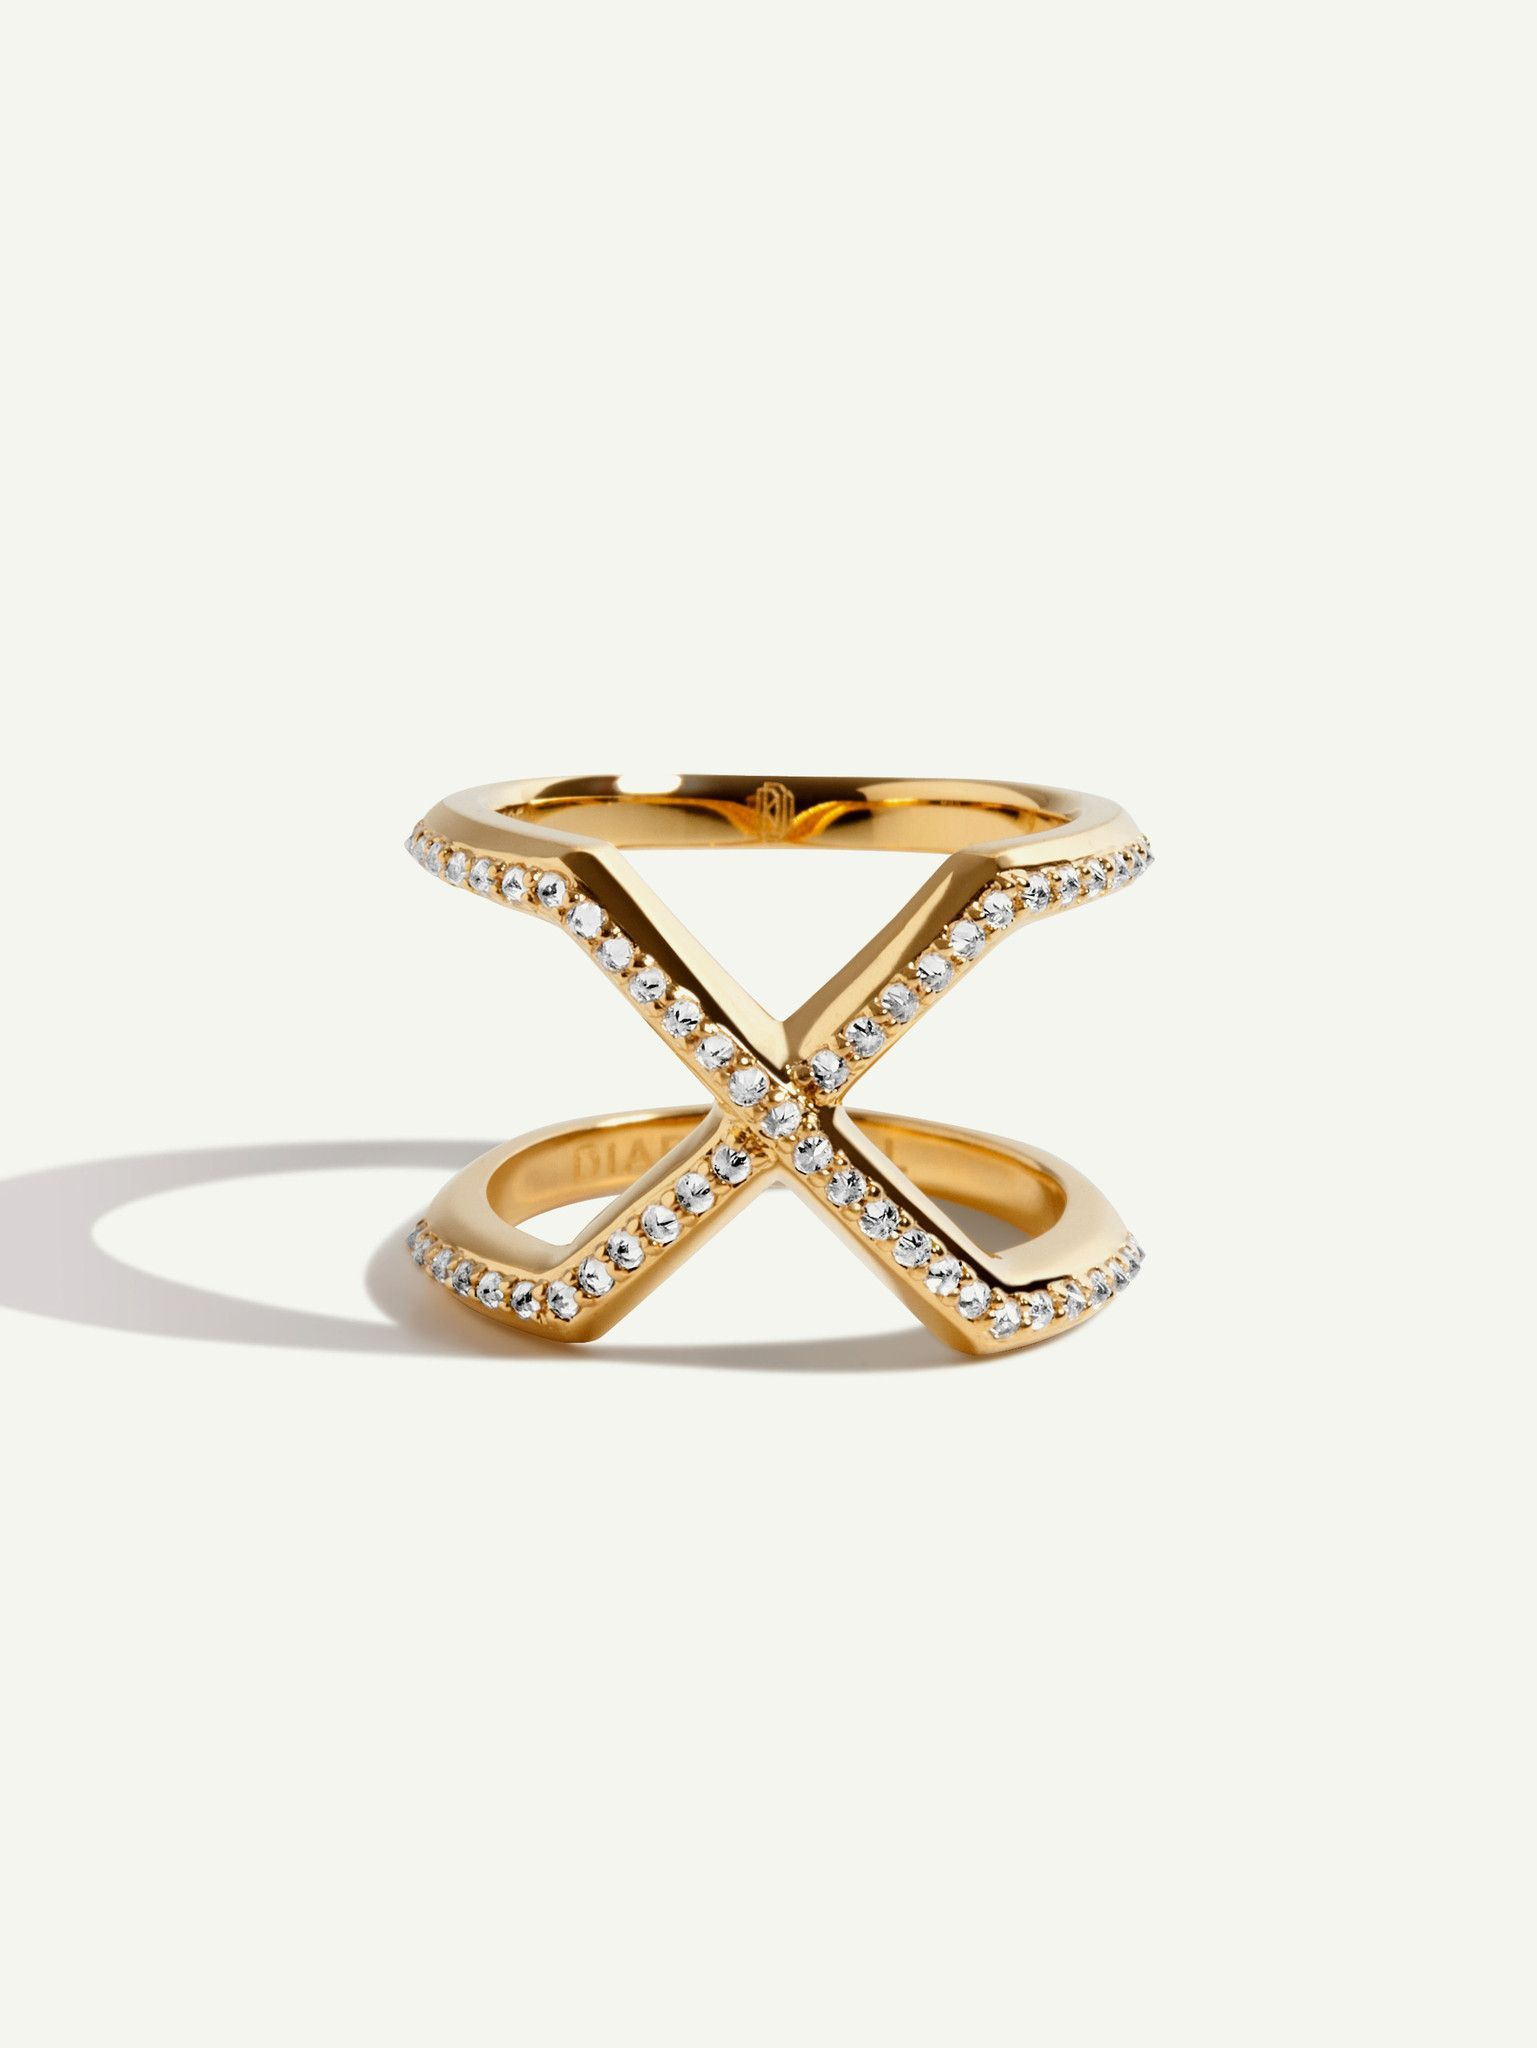 Exquis 8:17 18K Gold Ring With White Diamonds   Gold rings, Ring ...